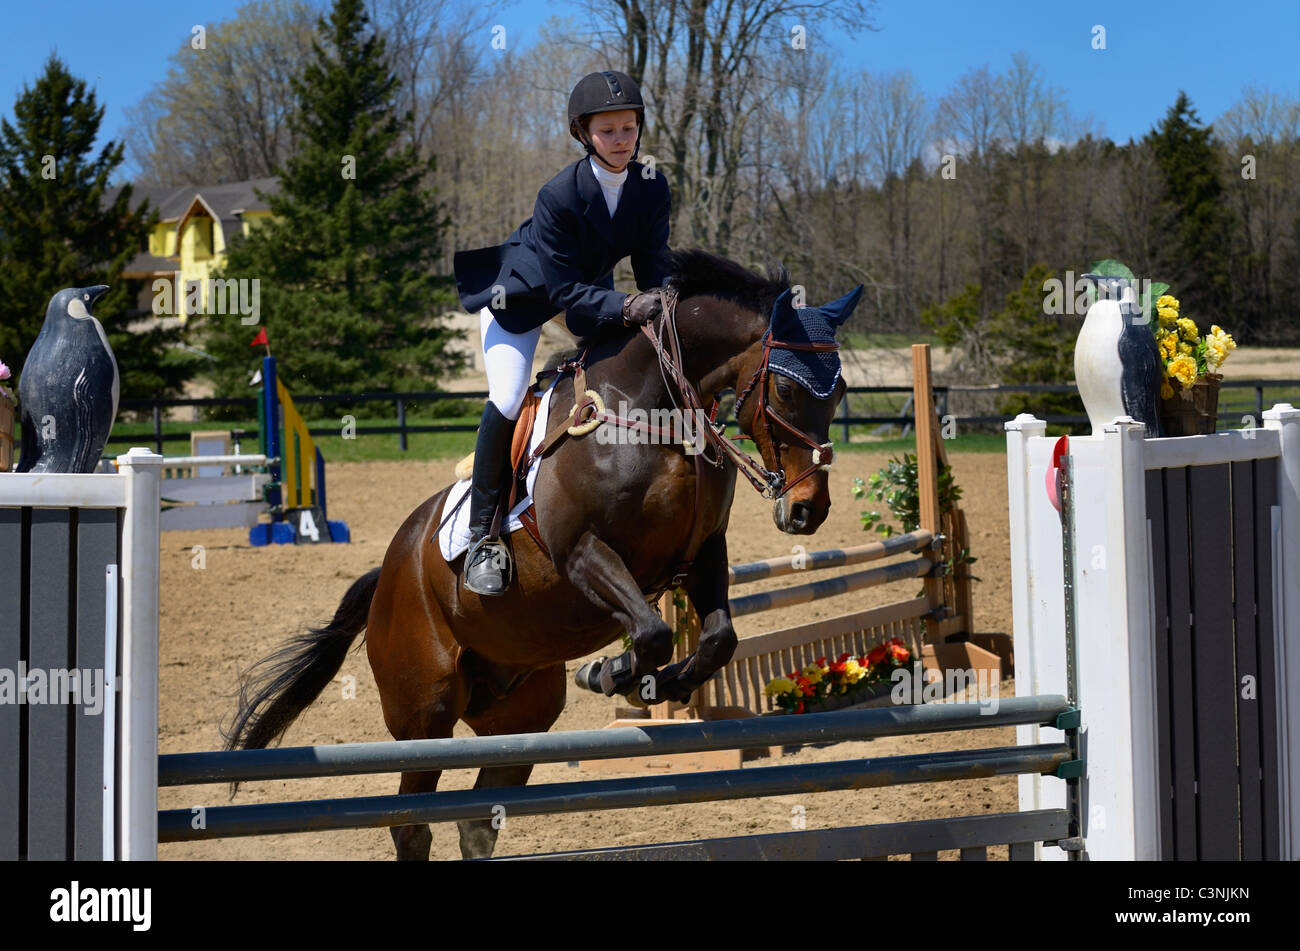 Teenage girl taking off on her thoroughbred horse over a jump at an outdoor equestrian show competition Ontario - Stock Image